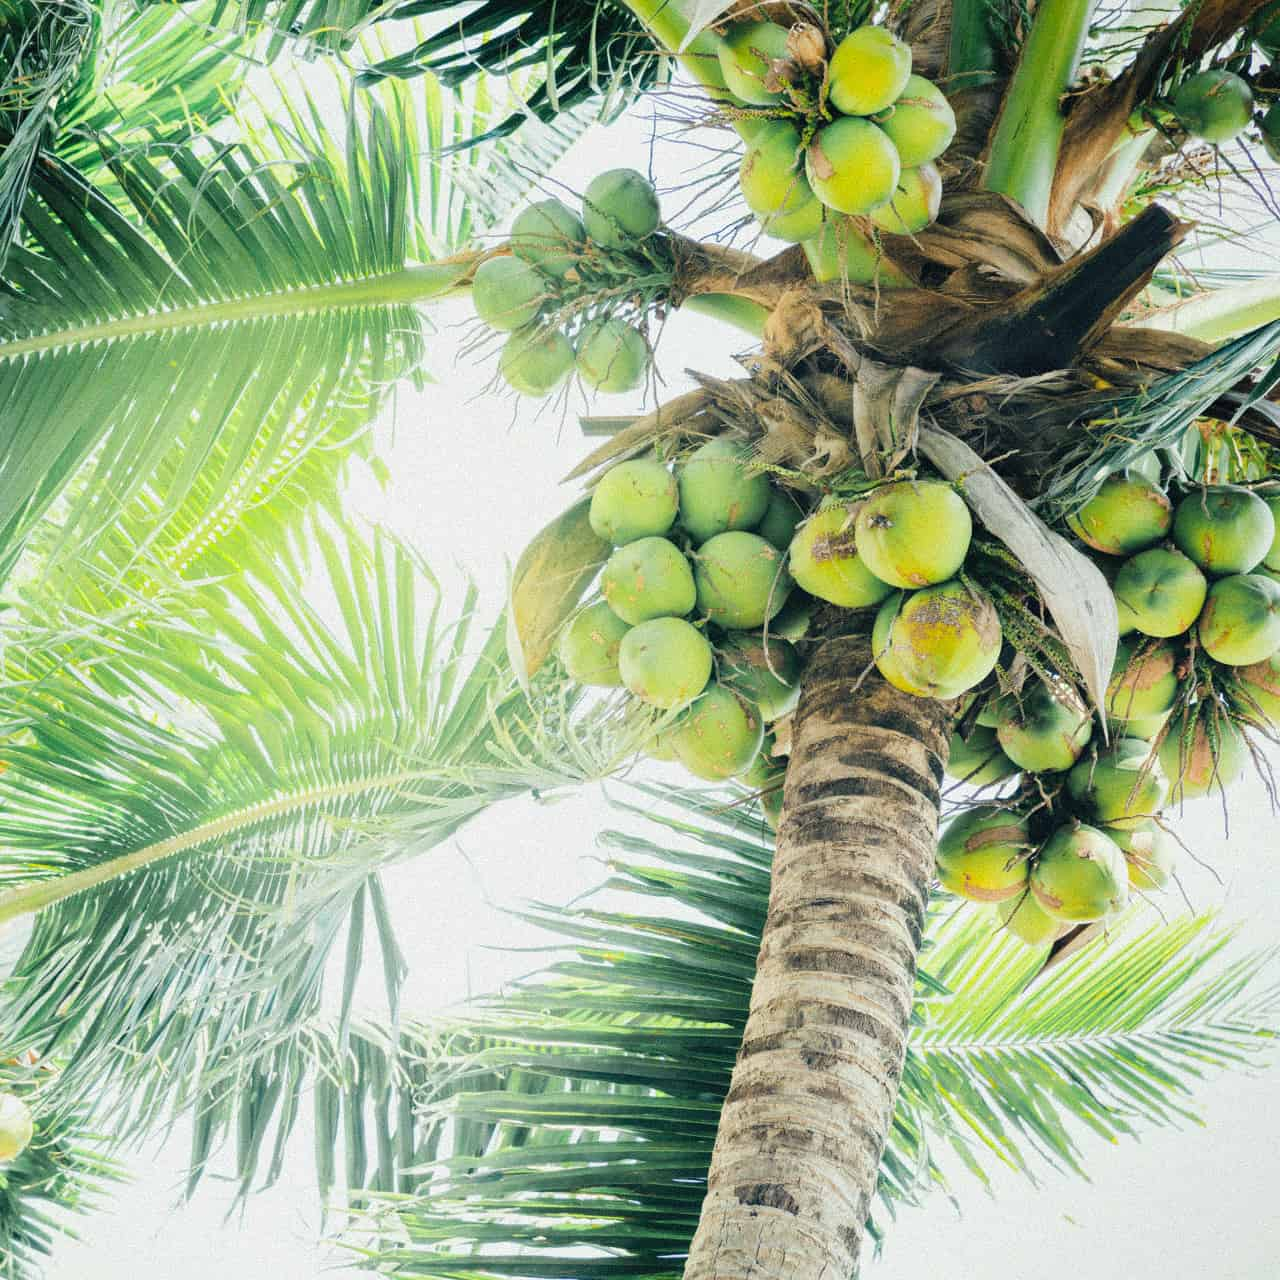 Fresh green coconuts on a palm tree in sun lights